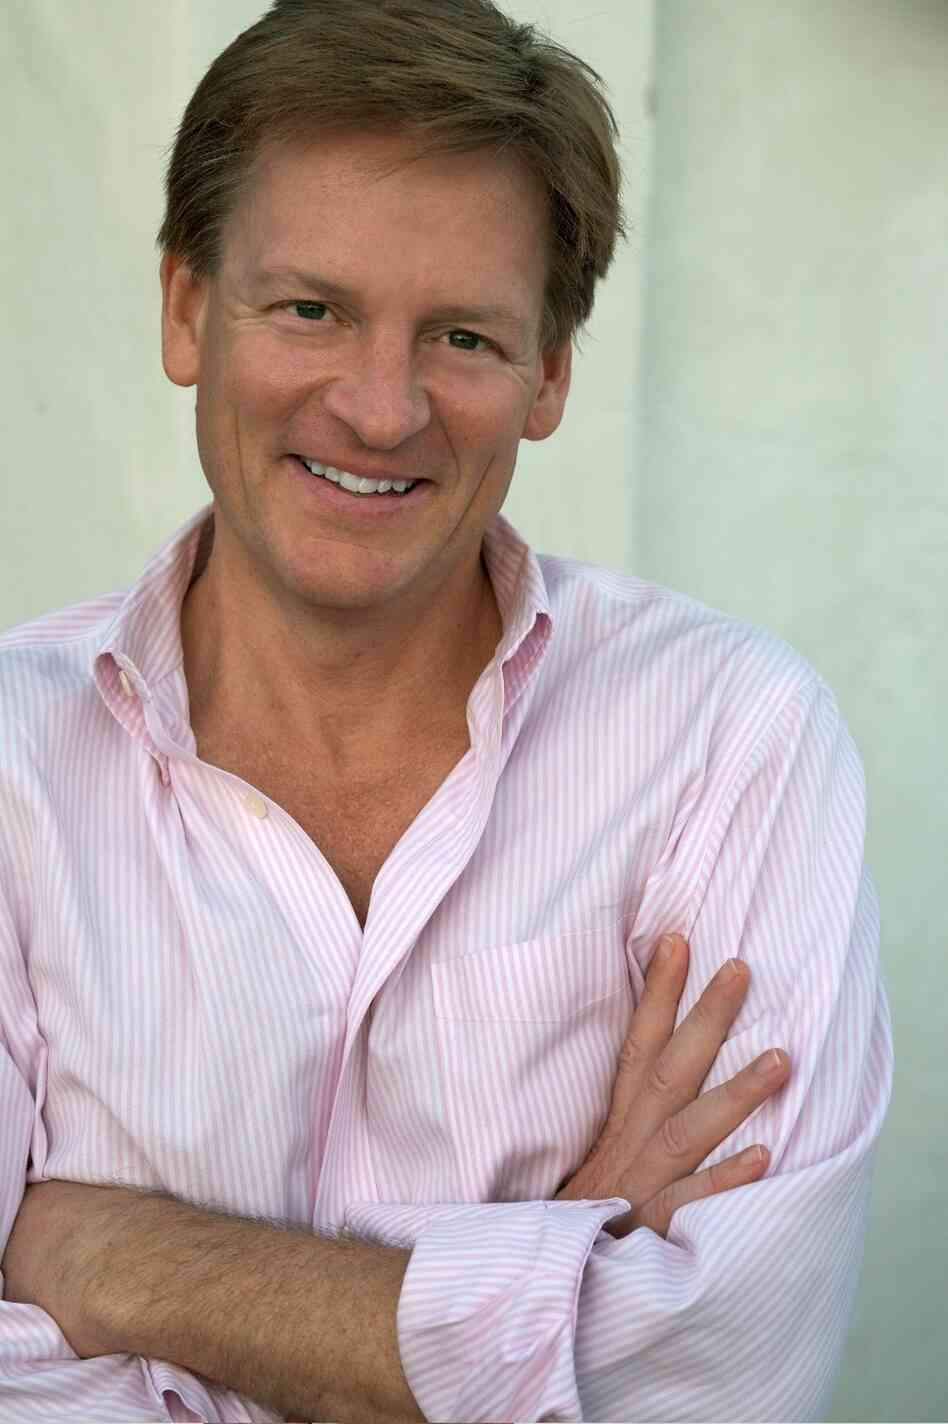 Michael Lewis is a contributing editor to Vanity Fair and the author of Moneyball, The Big Short, Liar's Poker and Boomerang.